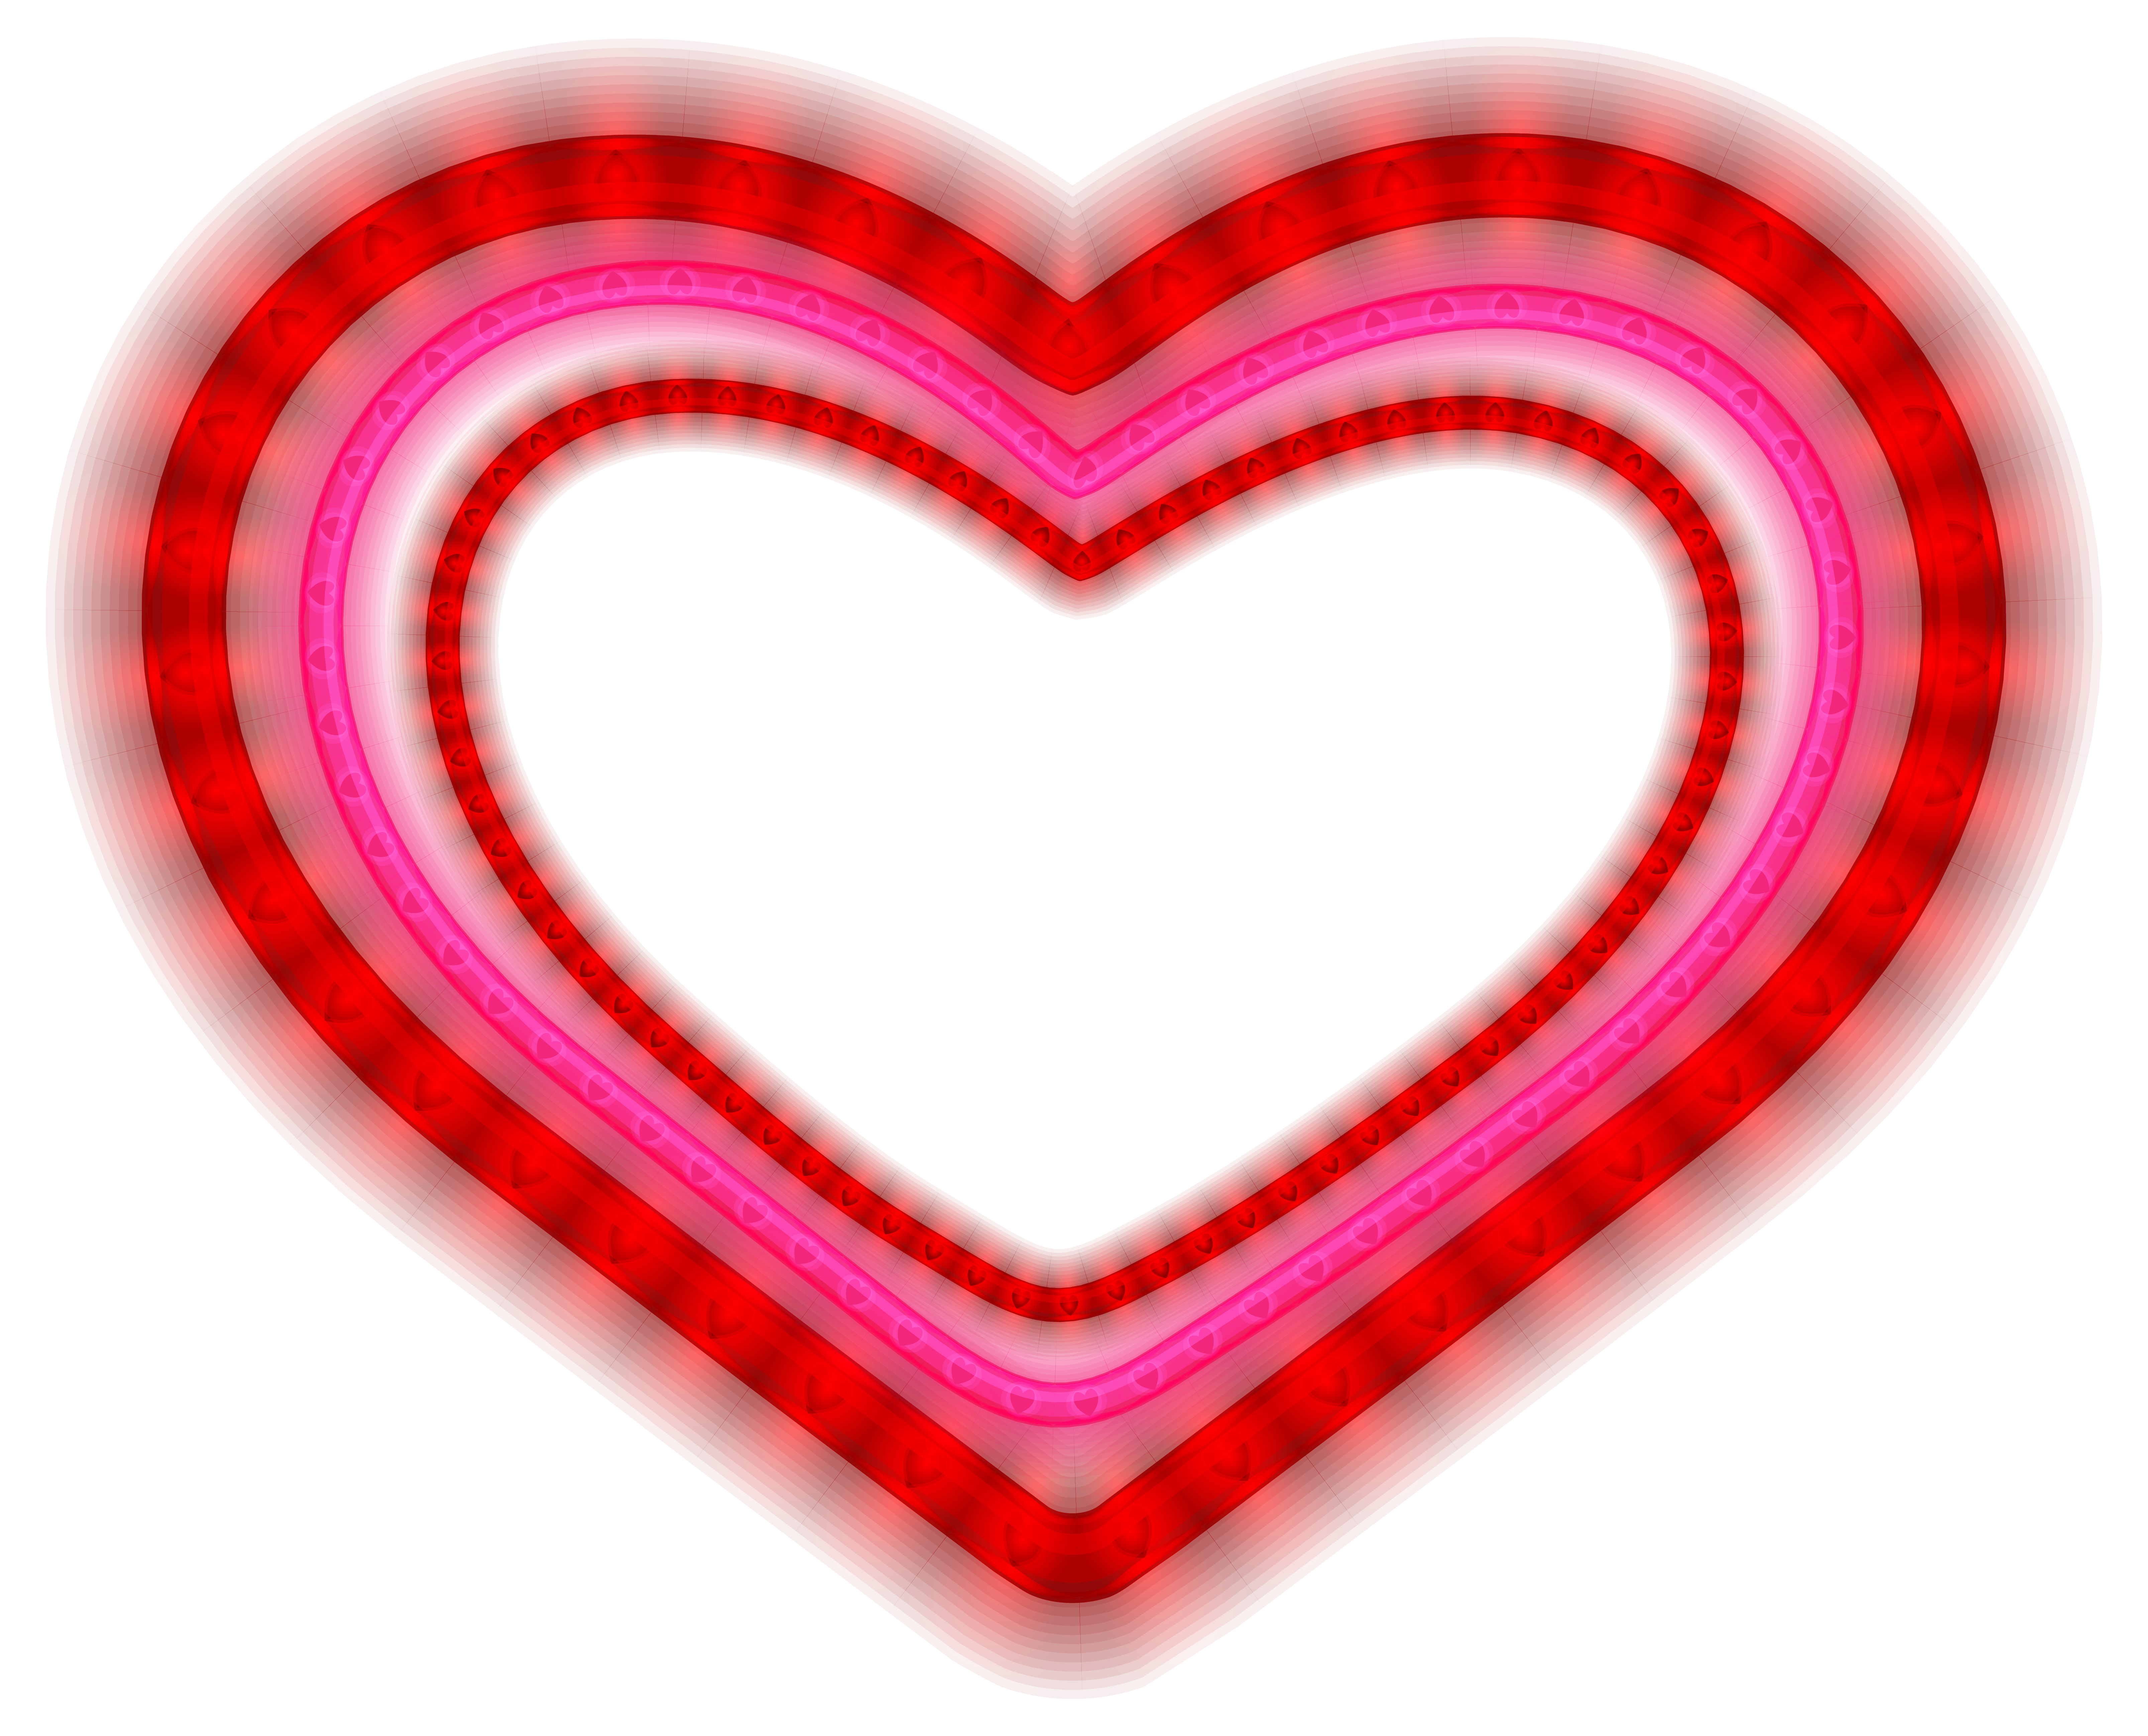 Piano clipart heart. Shining png image gallery